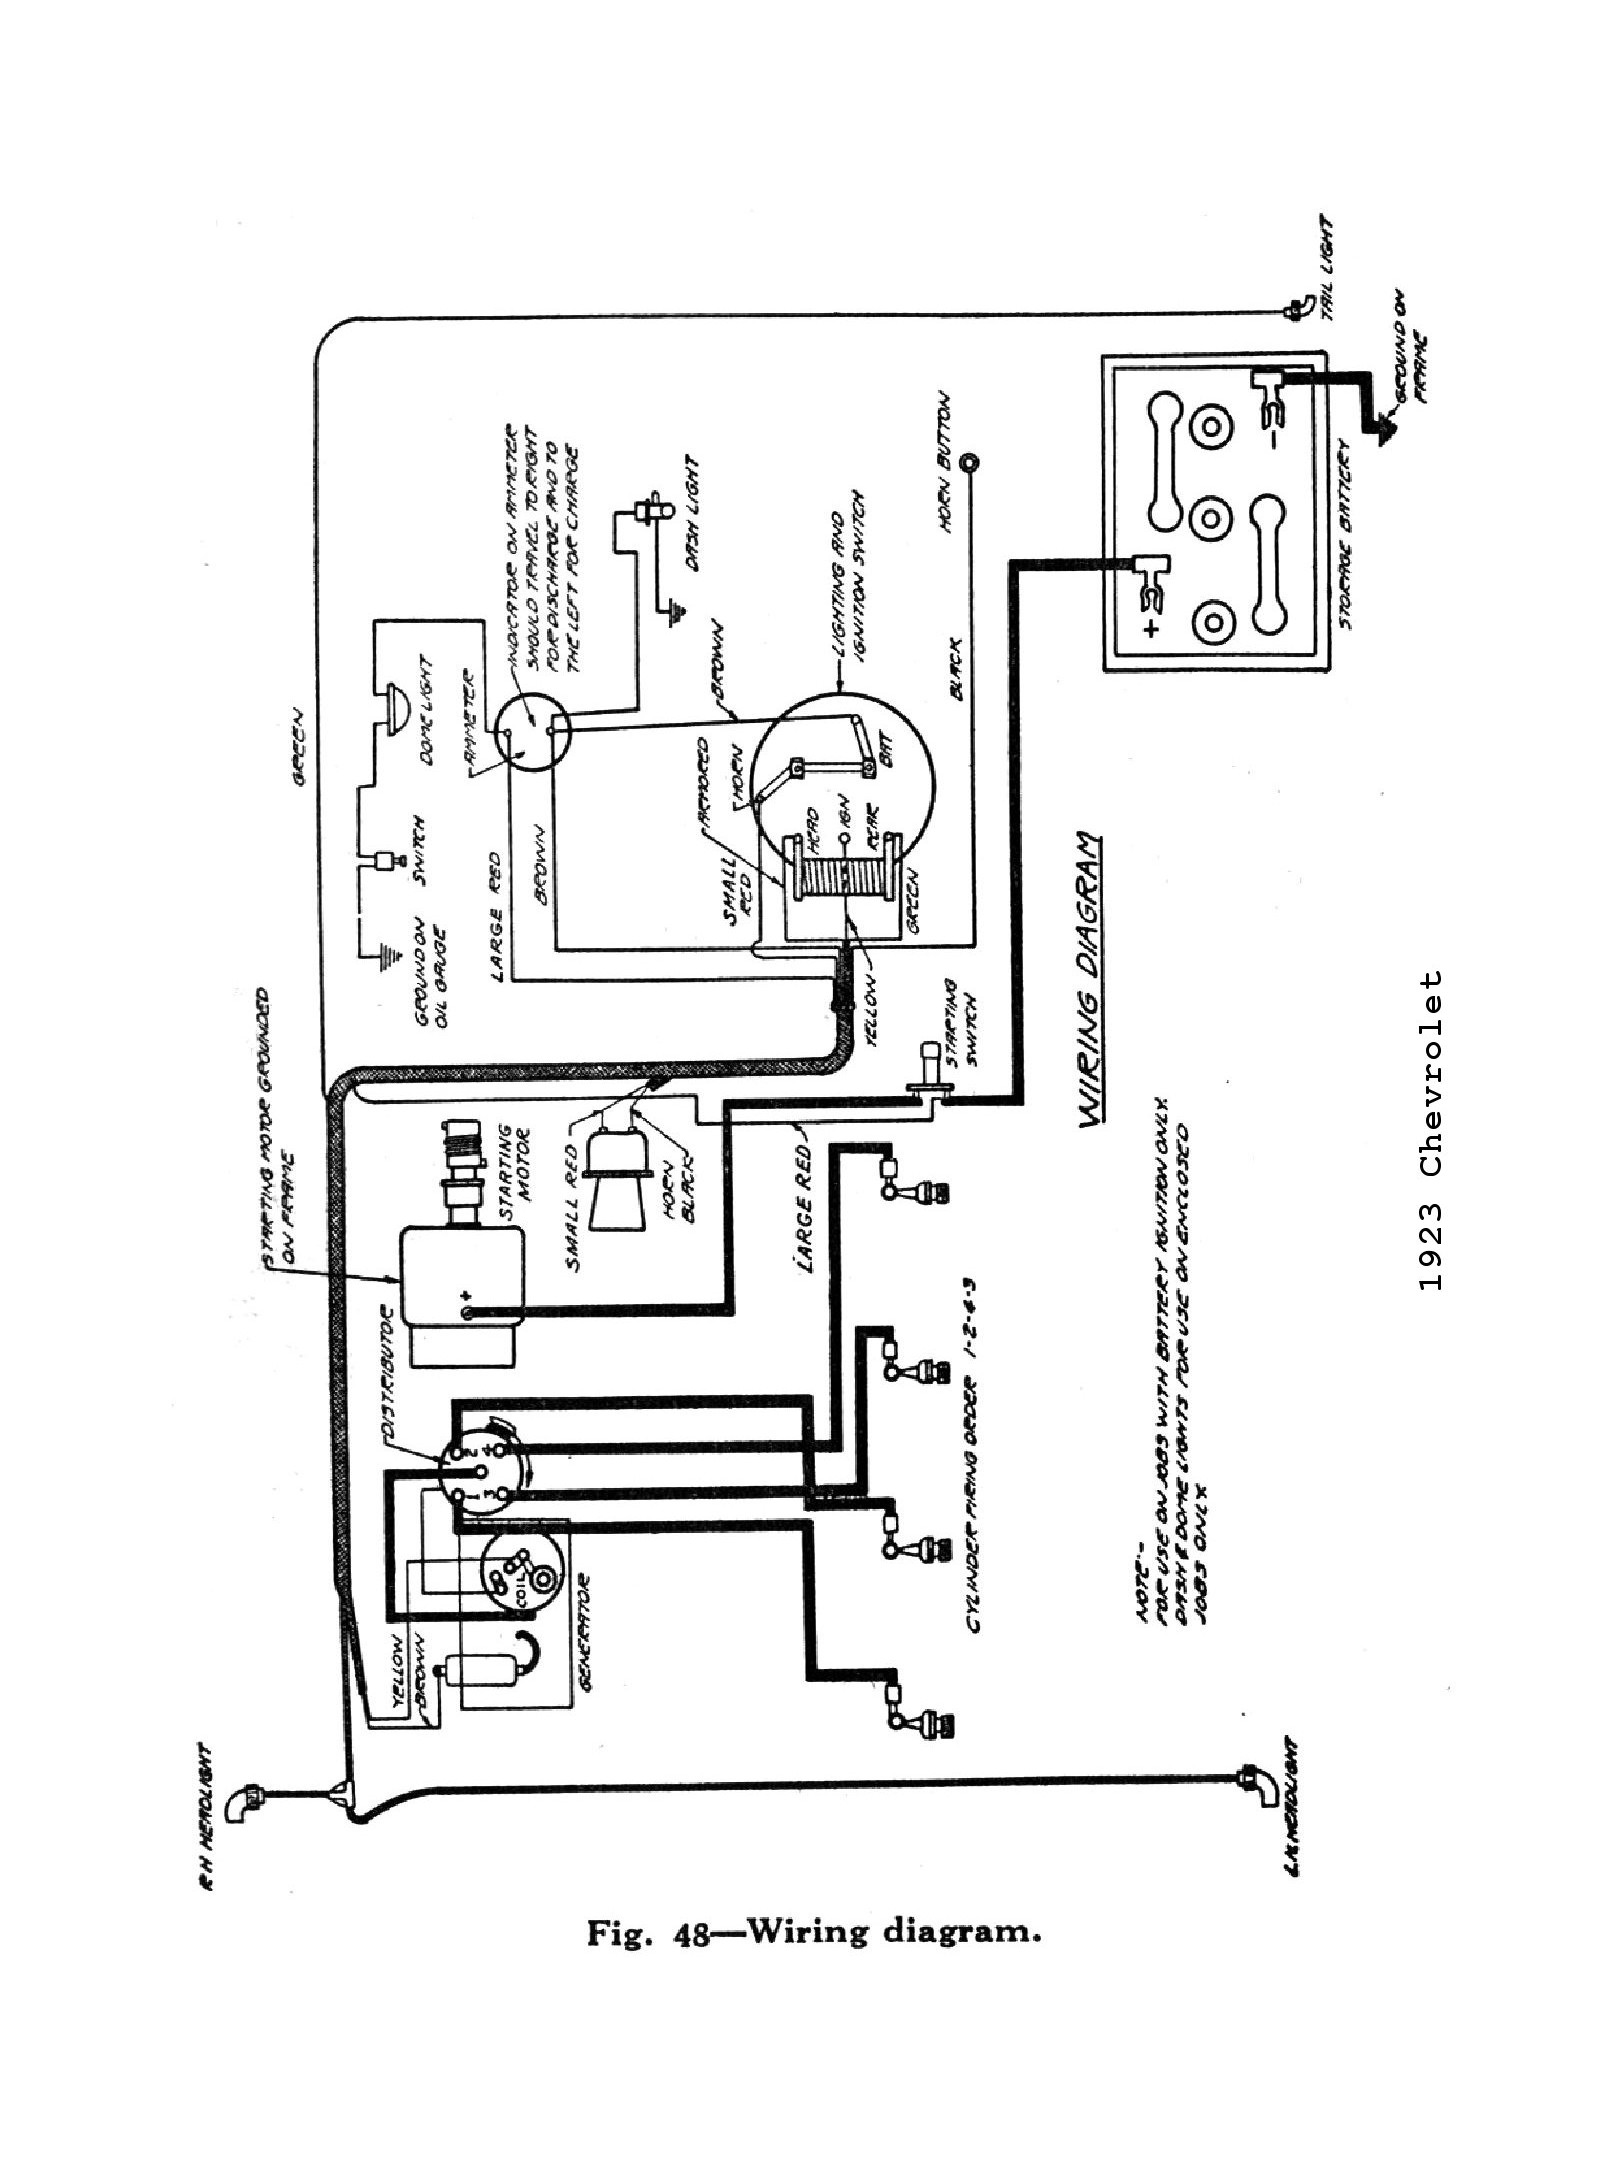 headlight switch wiring diagram for 1951 olds